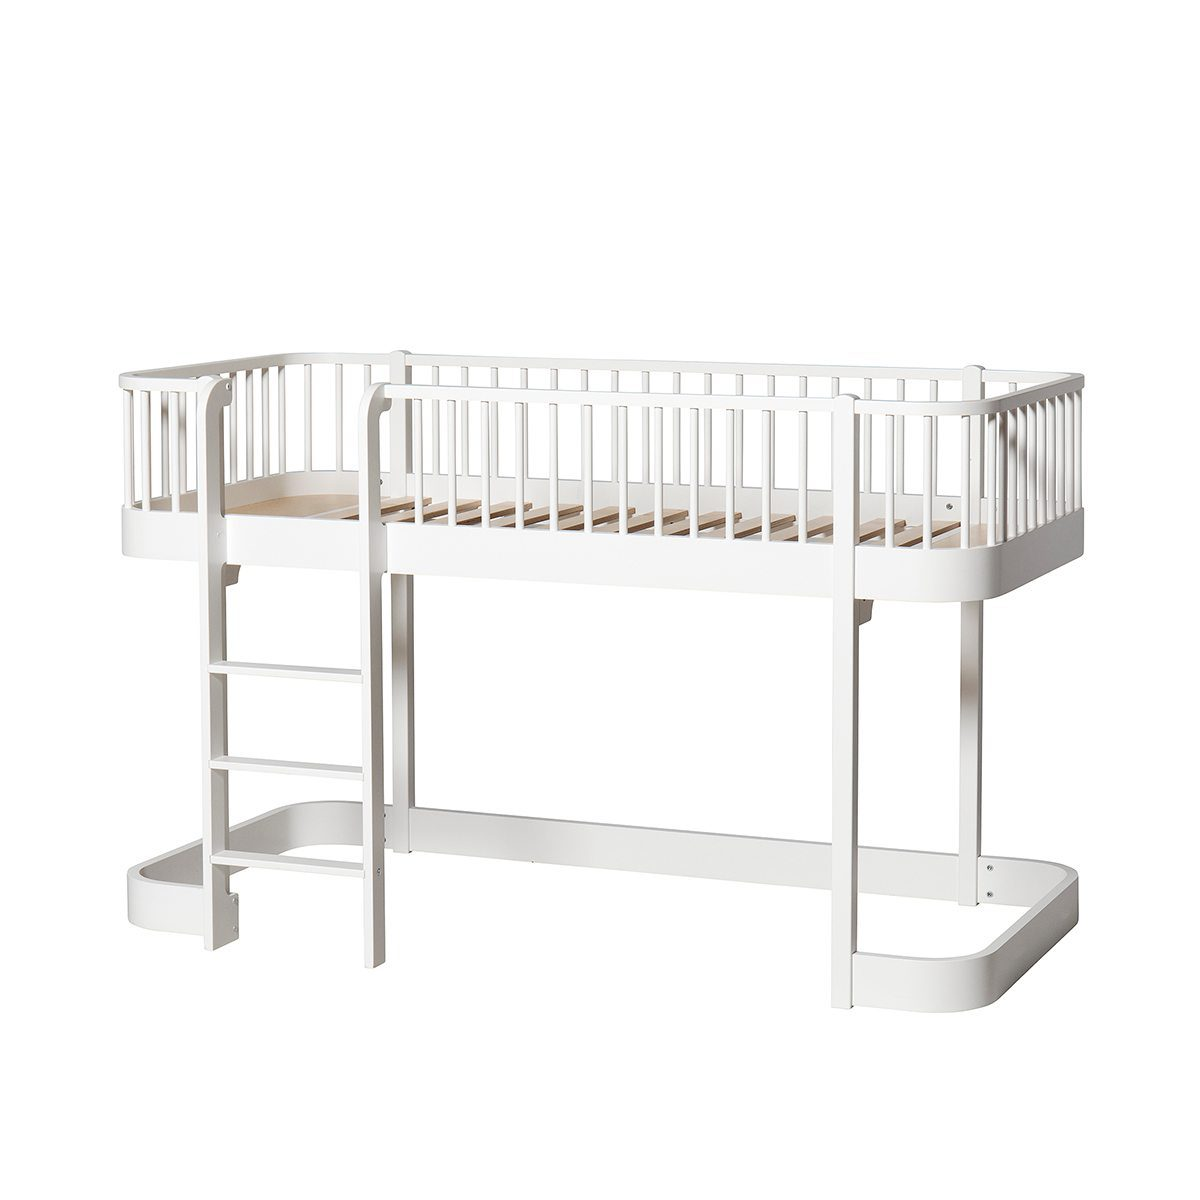 Oliver Furniture low Loft bed Wood white ladder links voor